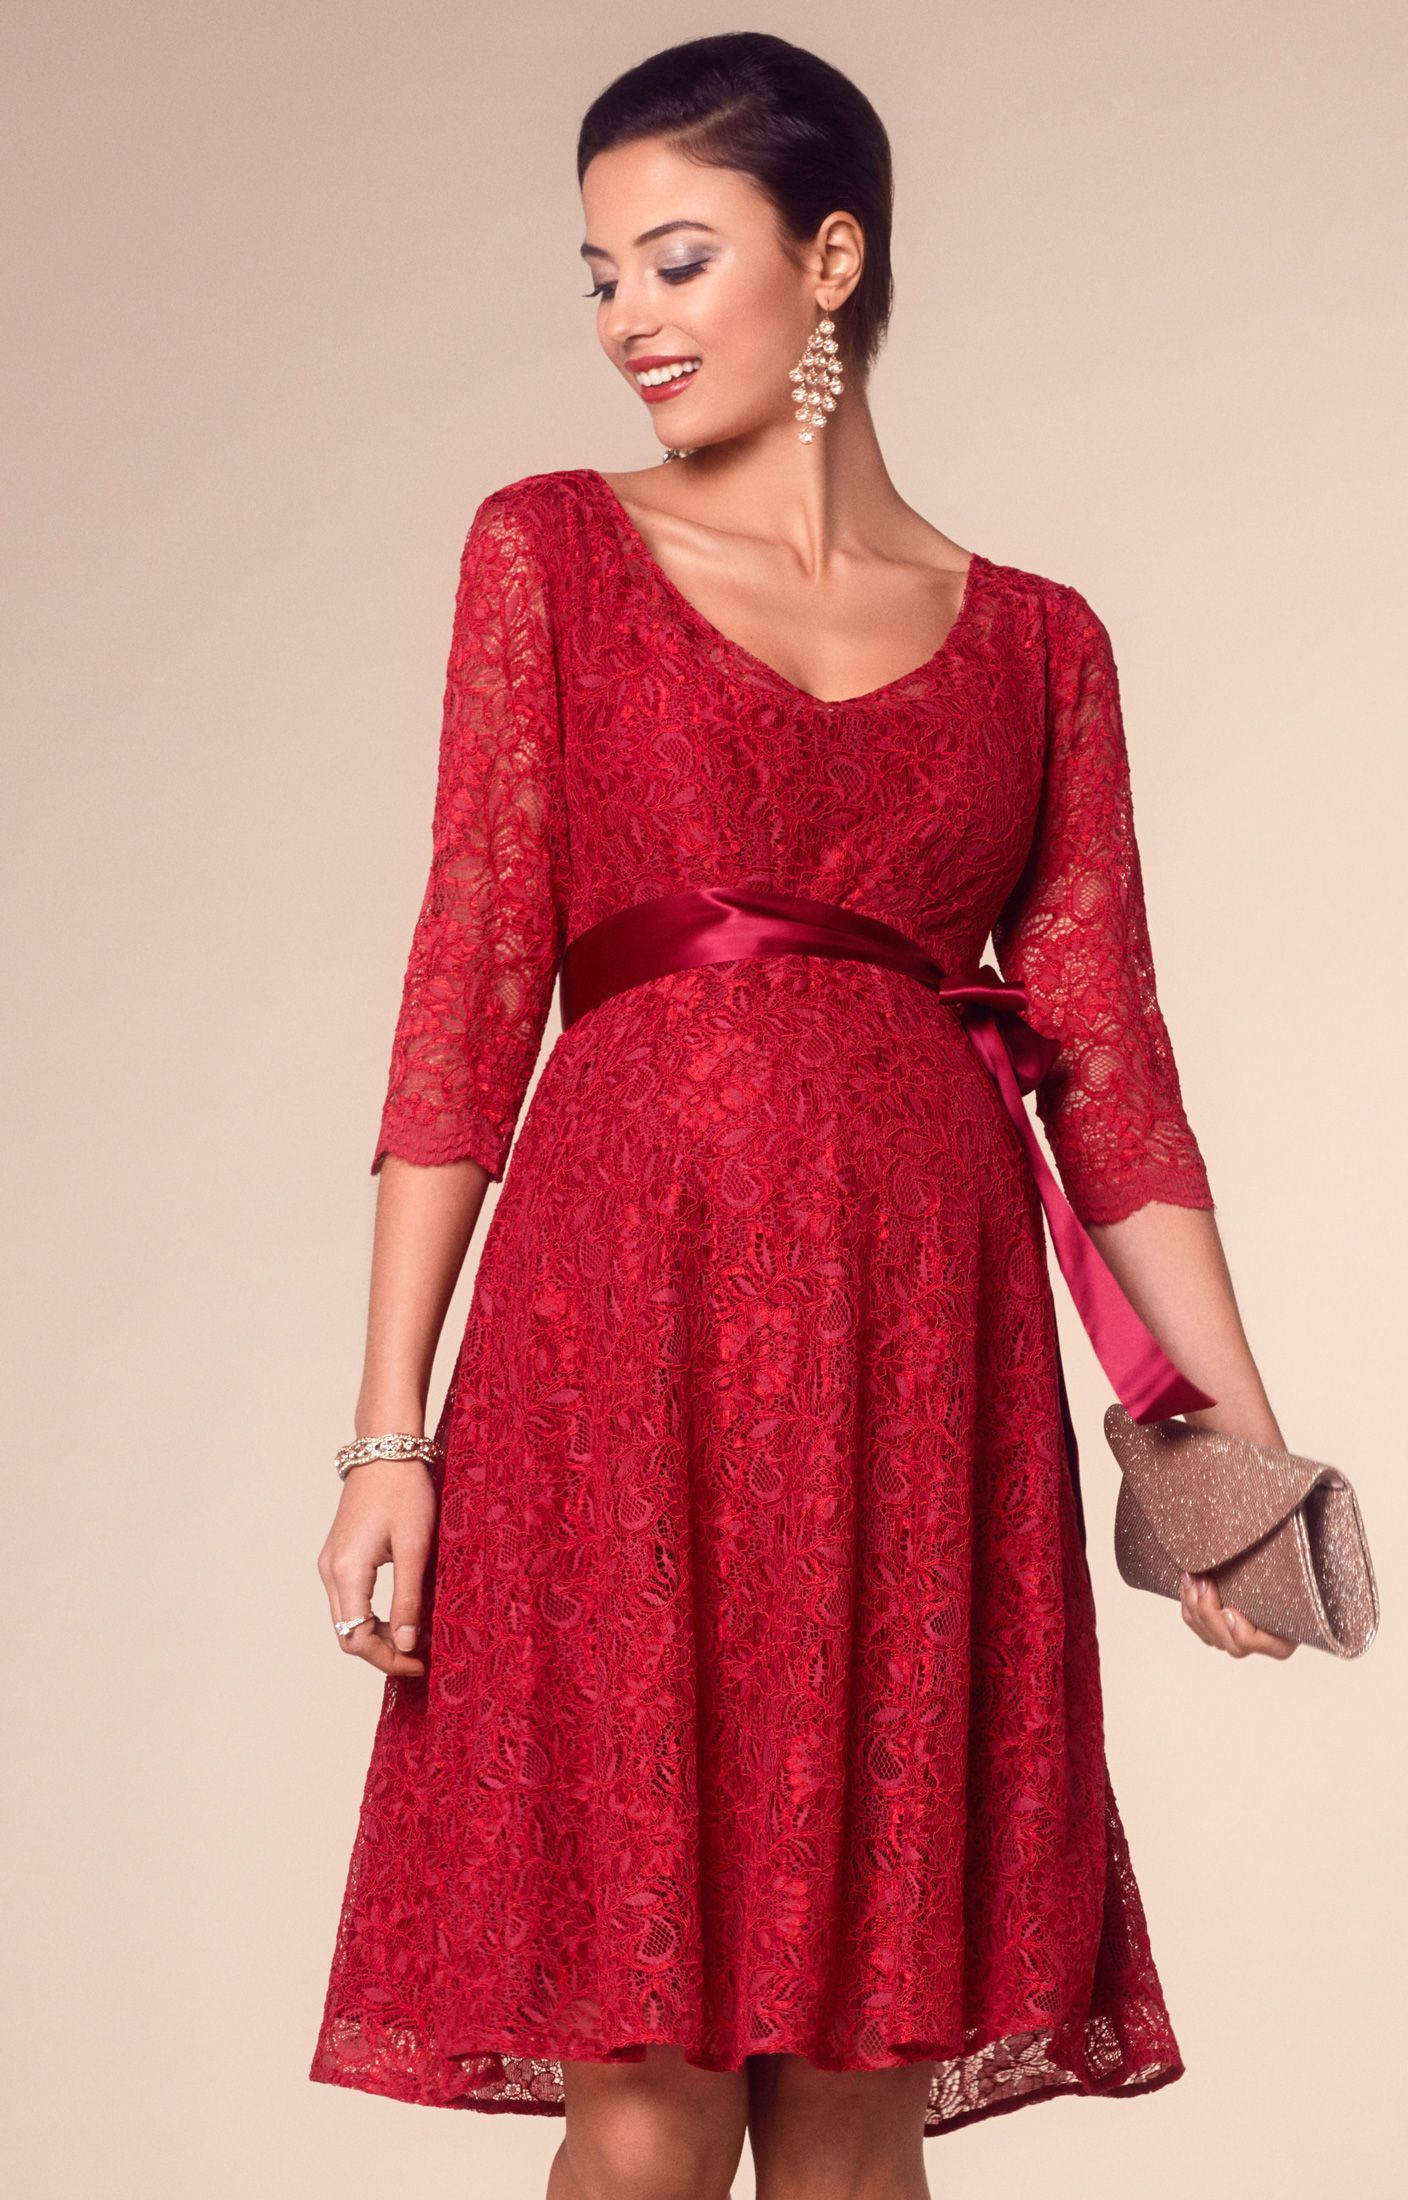 Freya dress short tiffany rose and scarlet our best selling freya lace maternity party dress in a fabulous new scarlet colourway just perfect for the festive season ombrellifo Choice Image